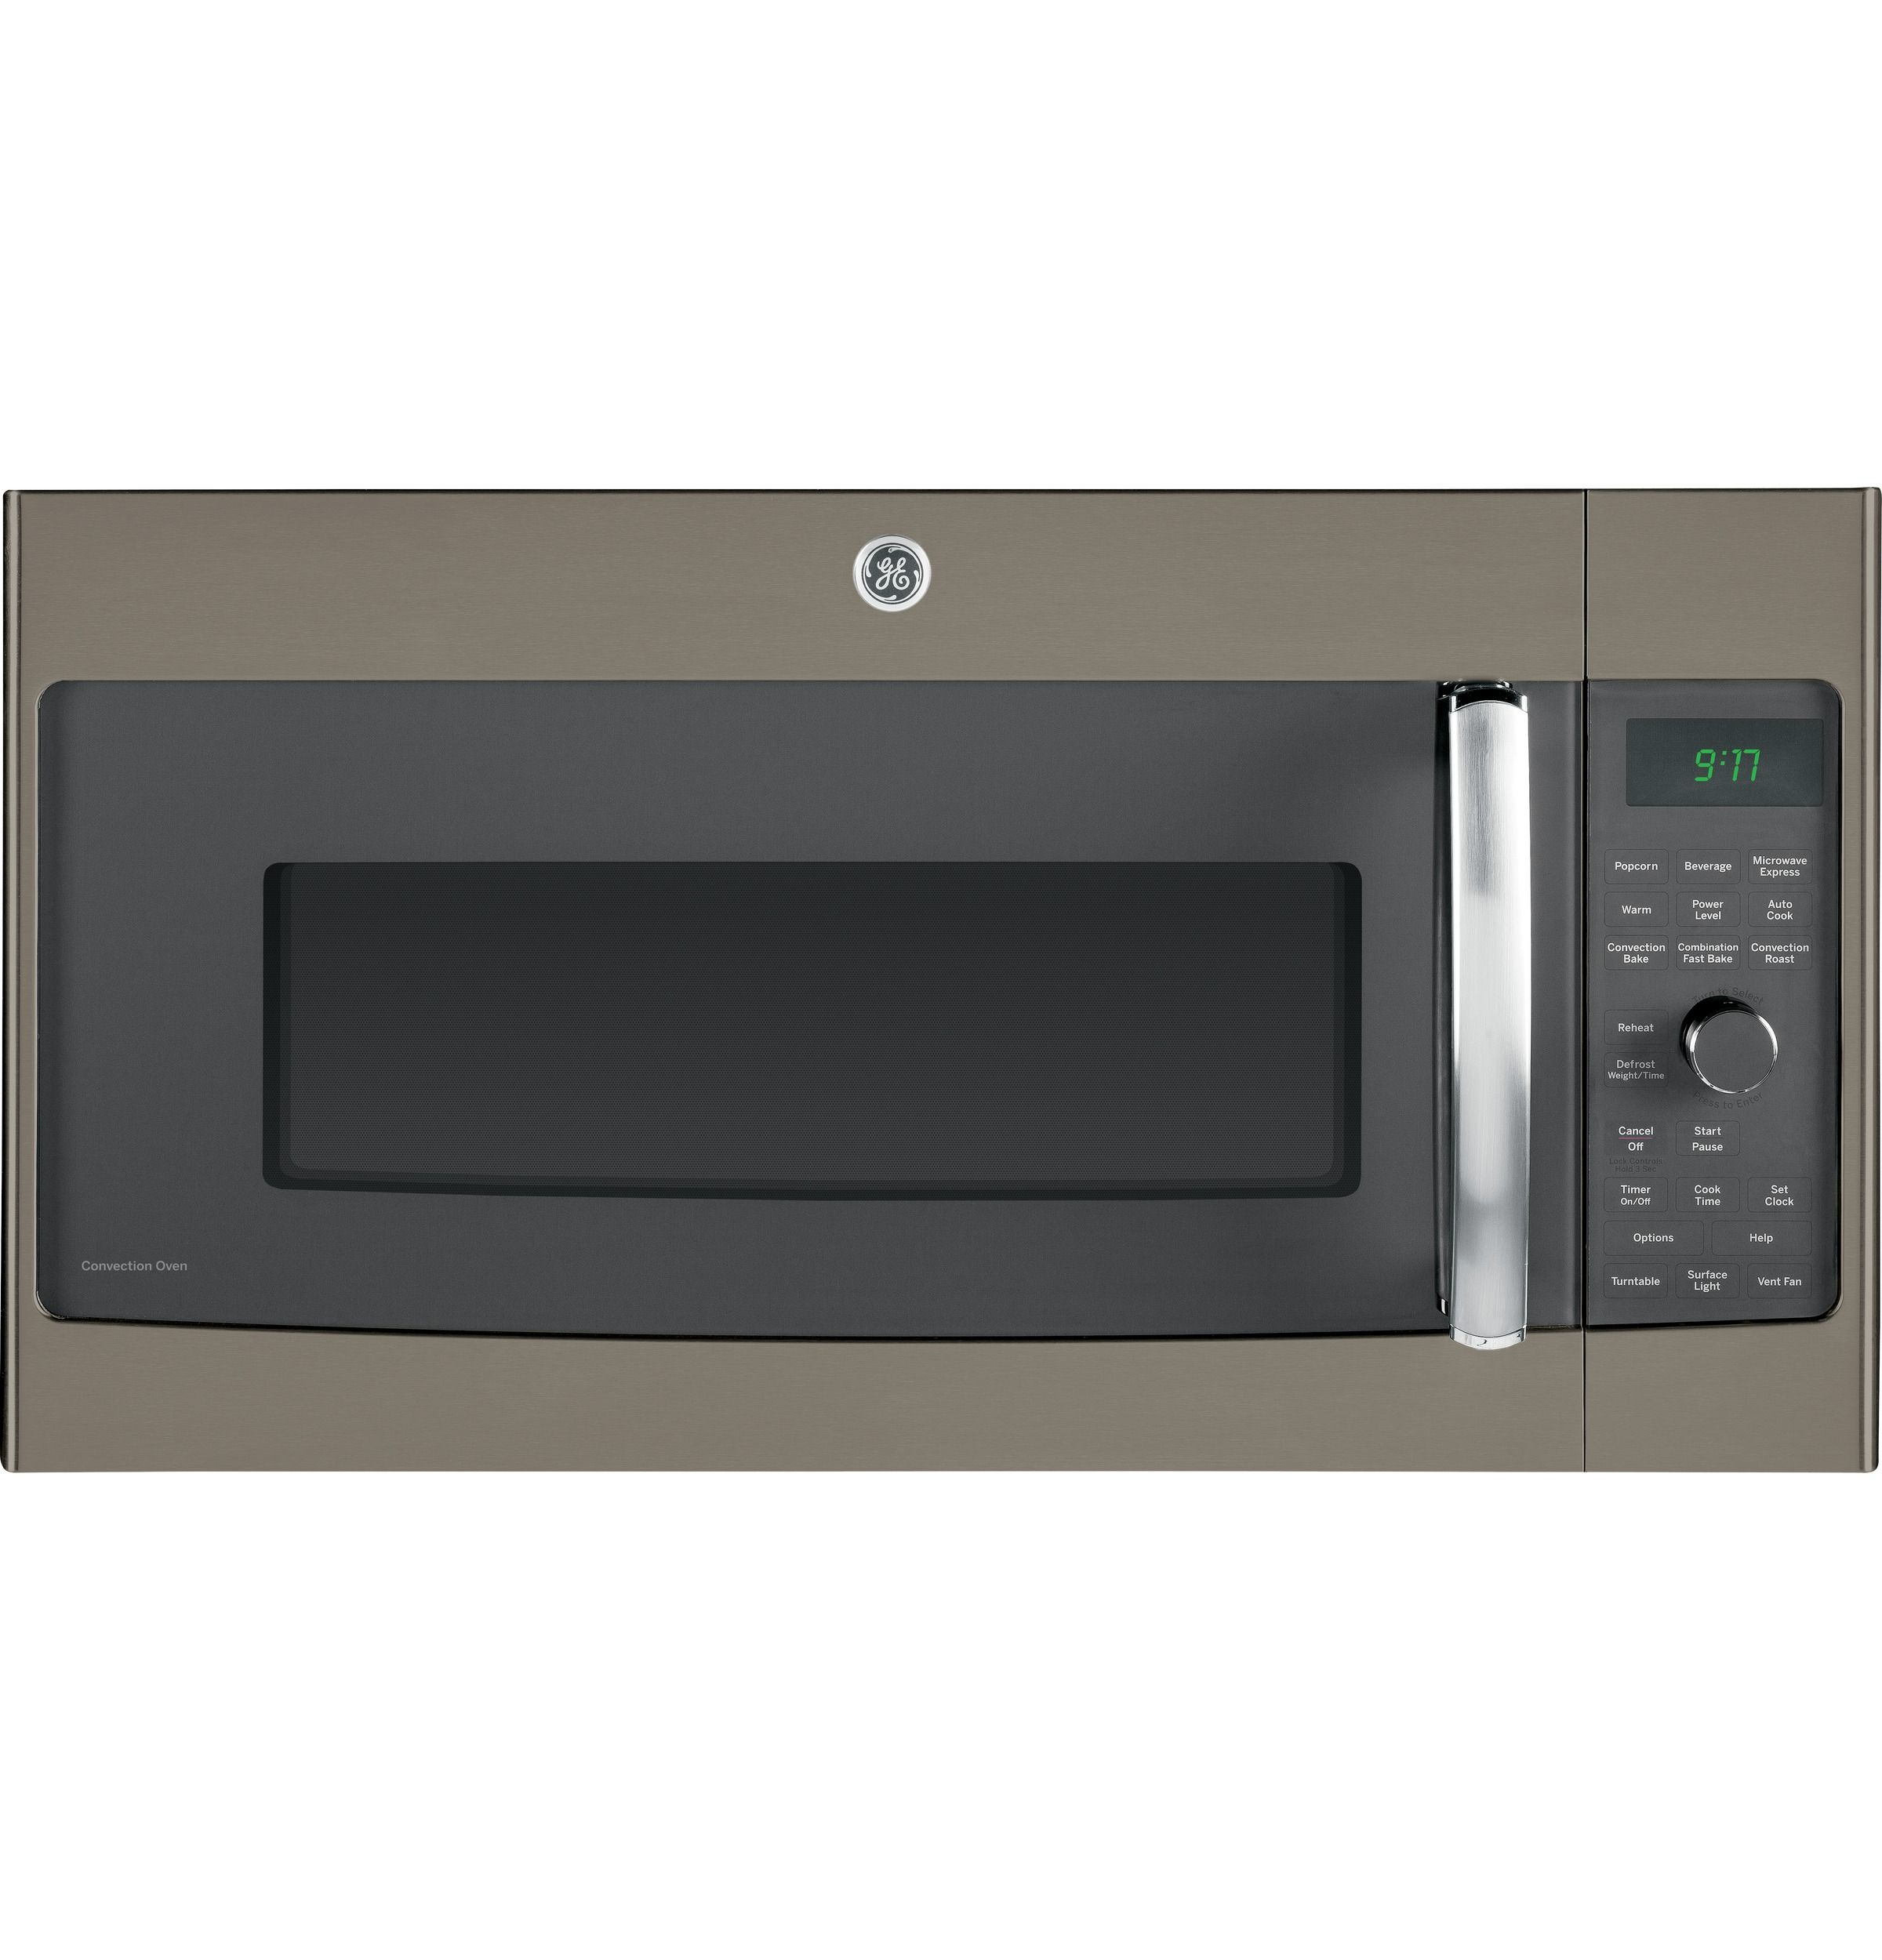 Ge Profile Series 1 7 Cu Ft Convection Over The Range Microwave Oven Pvm9179efes Range Microwave Microwave Convection Oven Stainless Steel Microwave